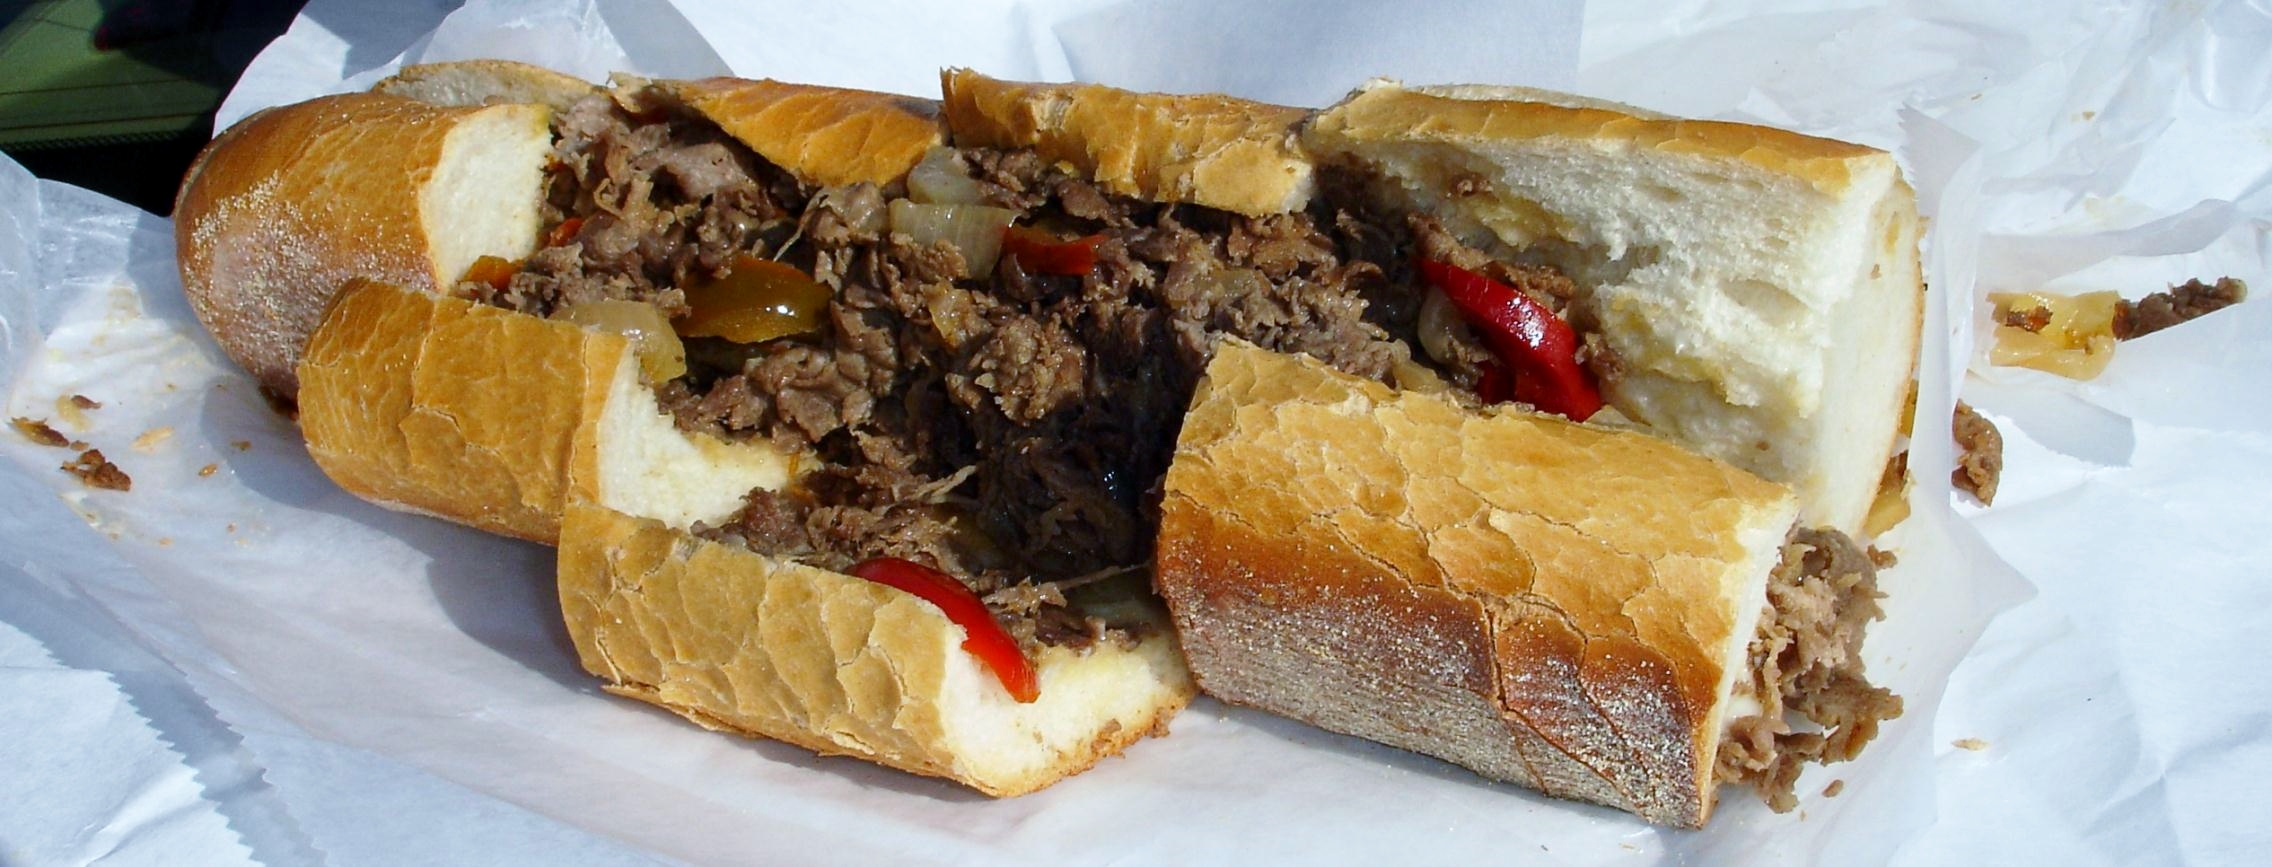 A Big Daddy cheese steak adds cherry peppers and fried onions to the meat and cheese.